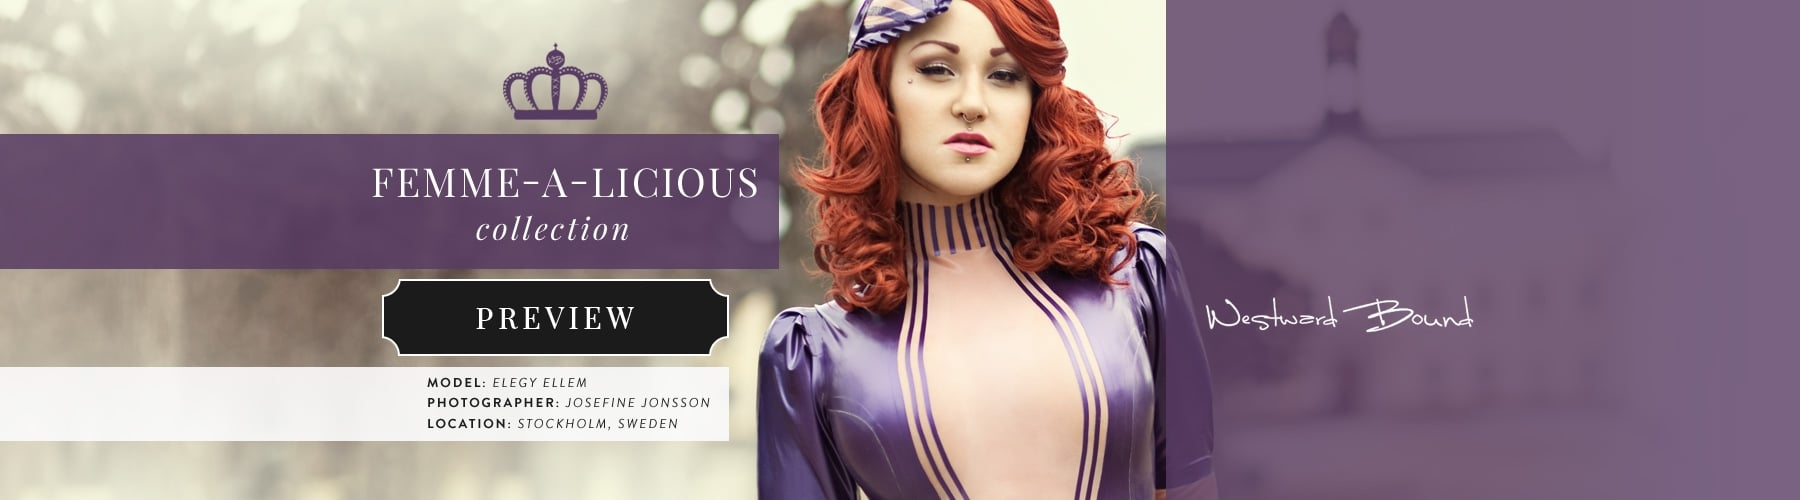 Femme-A-Licious Latex Rubber Clothing Collection.